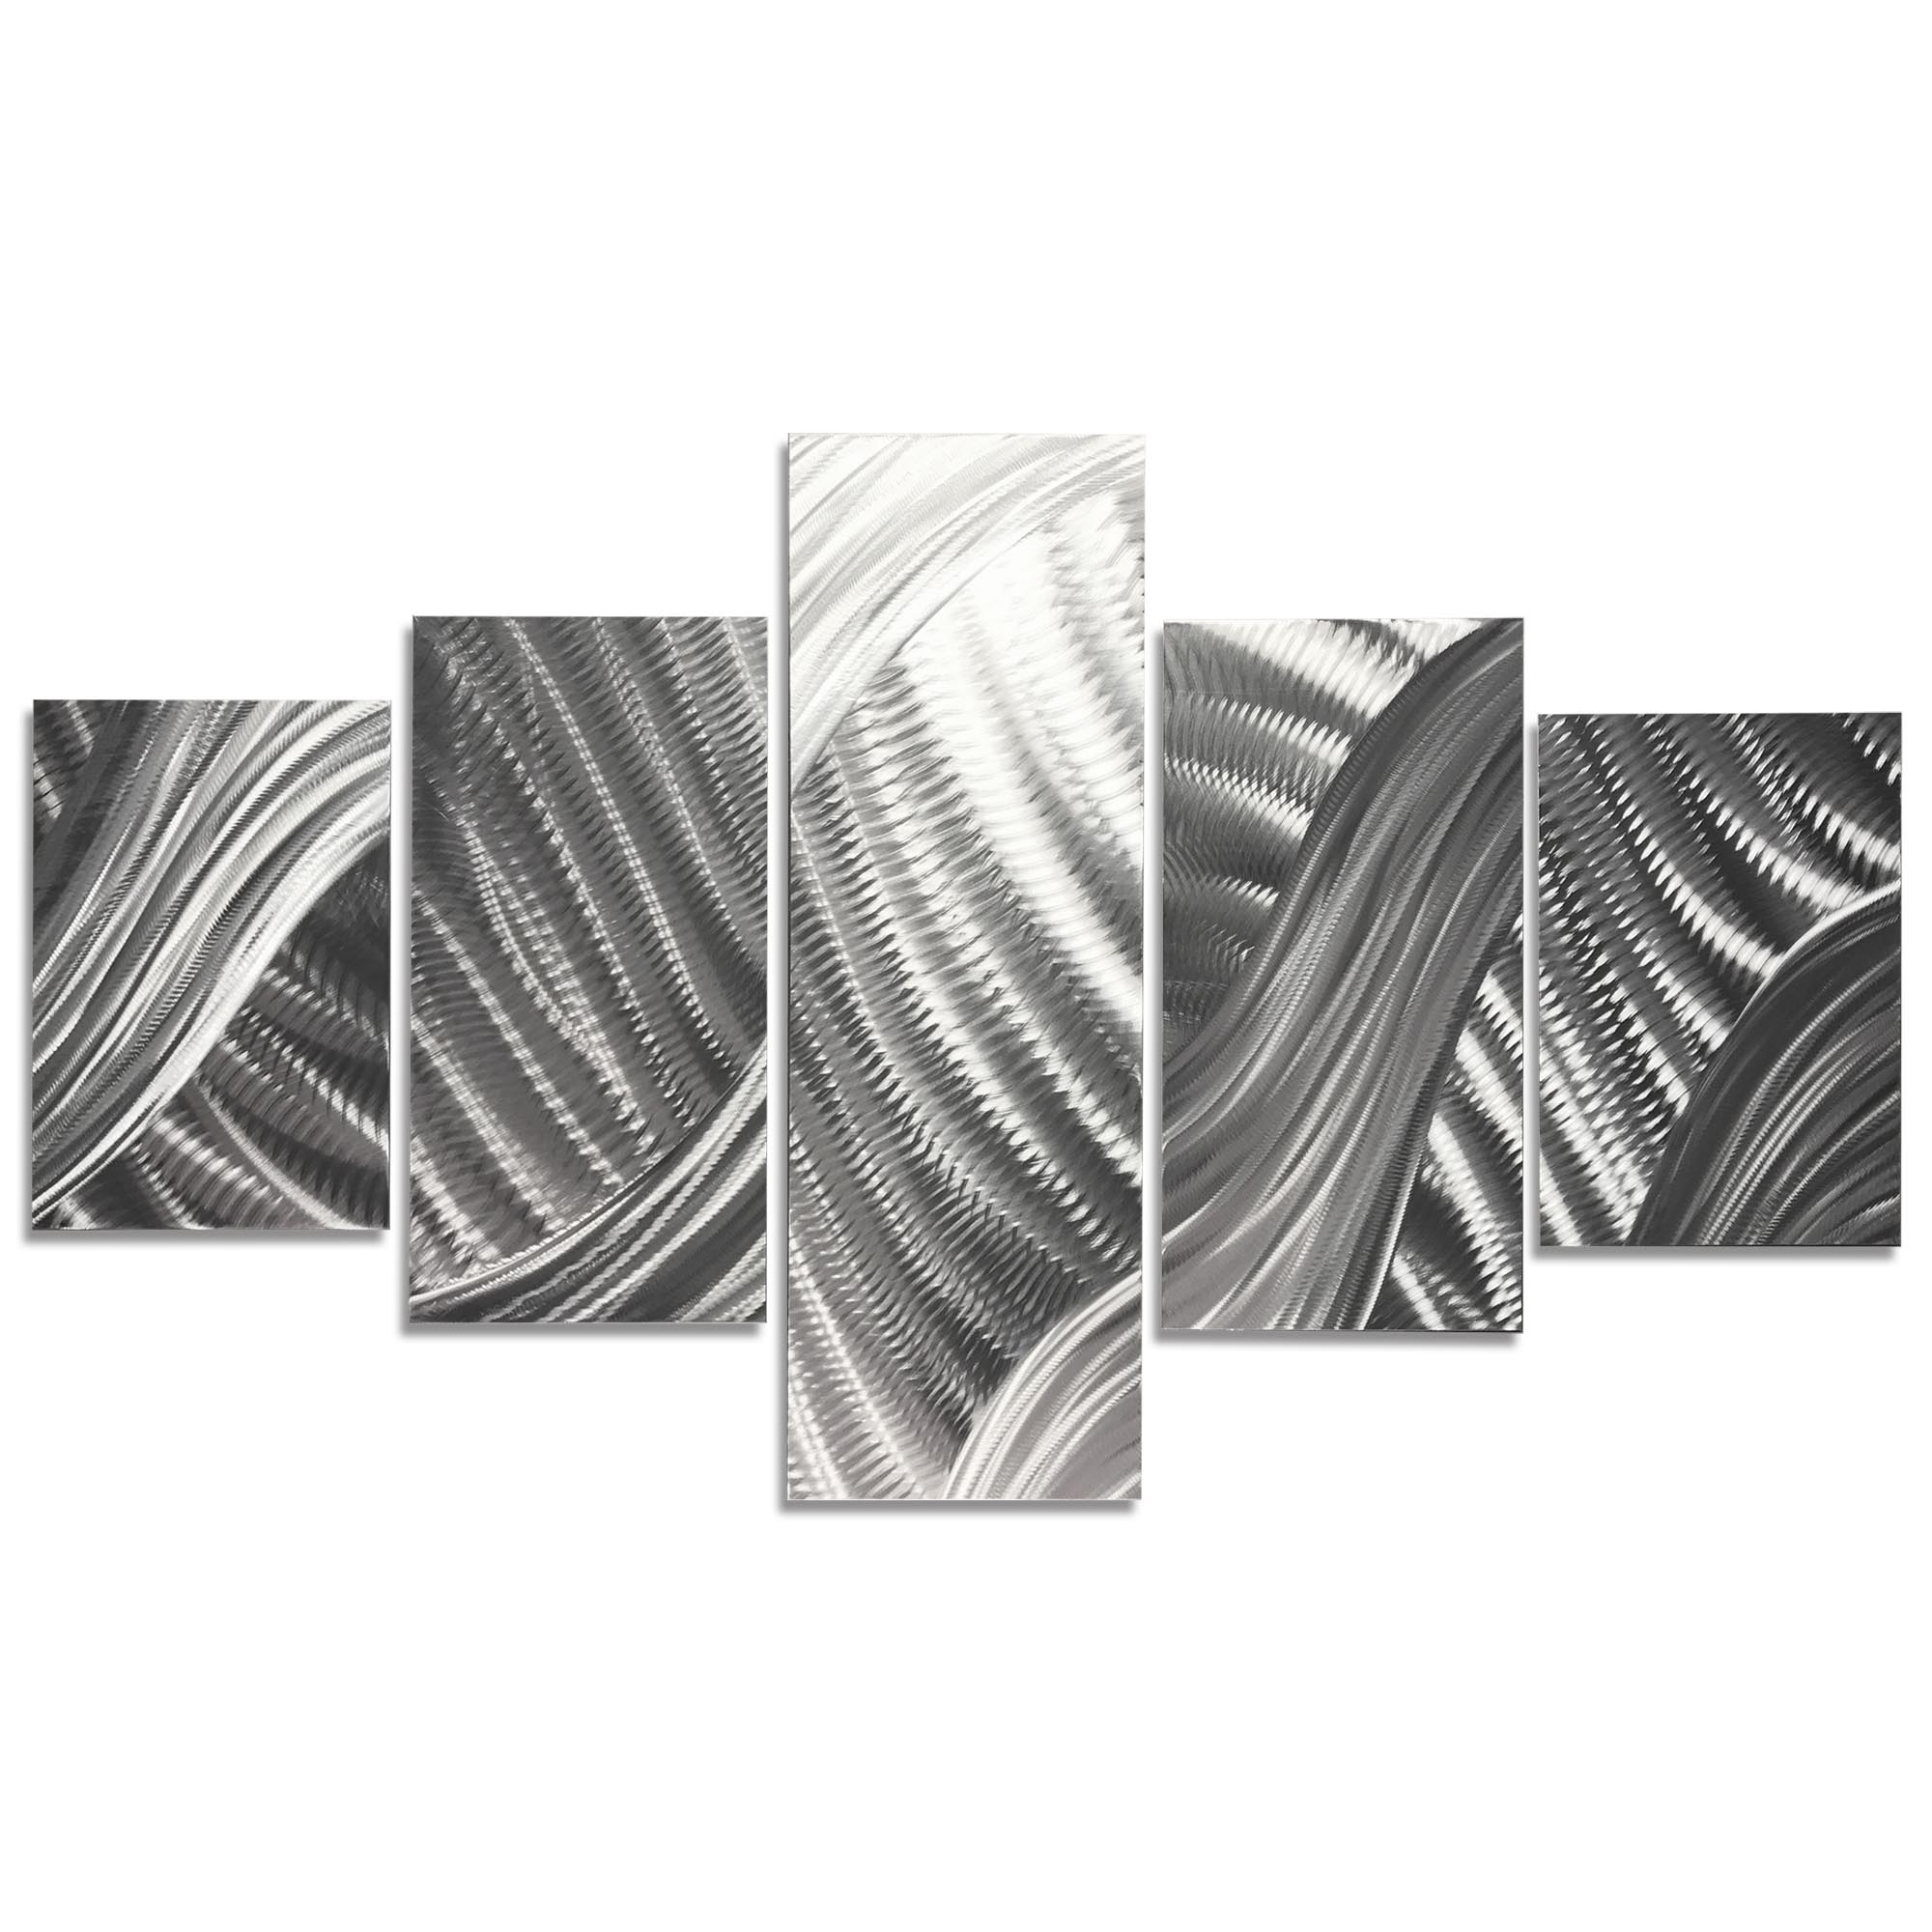 Columnar Brushstrokes 64x36in. Natural Aluminum Abstract Decor